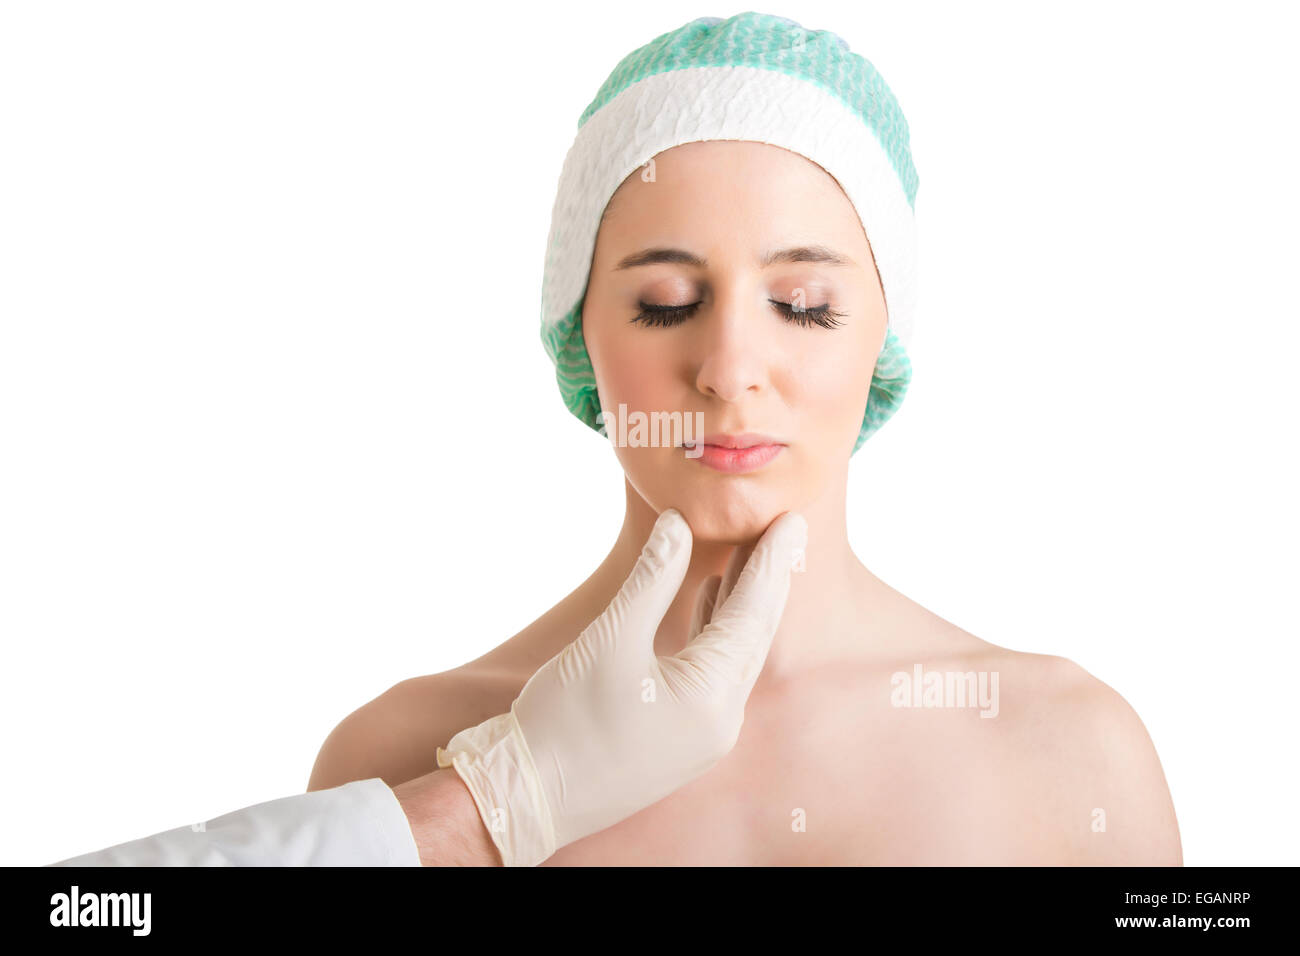 Woman ready for cosmetic surgery in her face, isolated in white - Stock Image